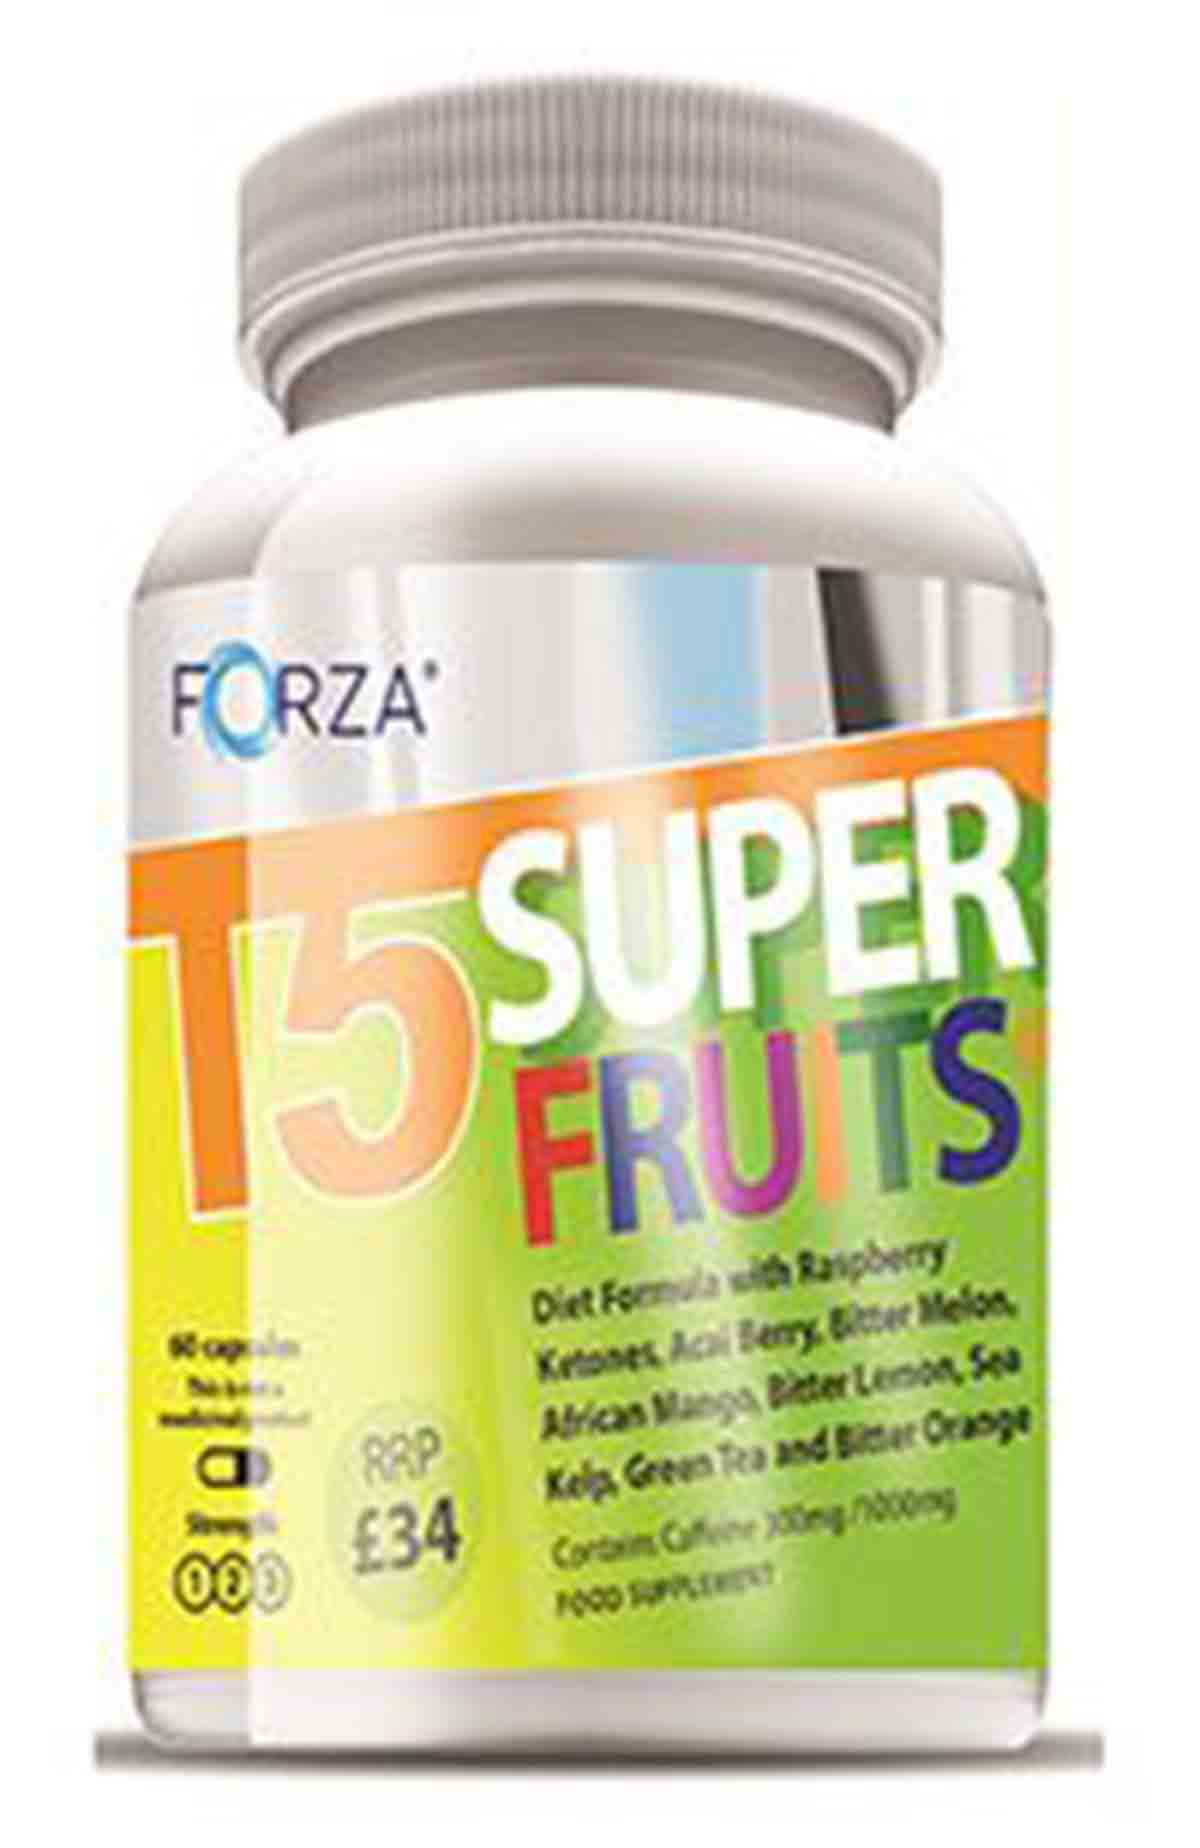 T5 Super Fruits